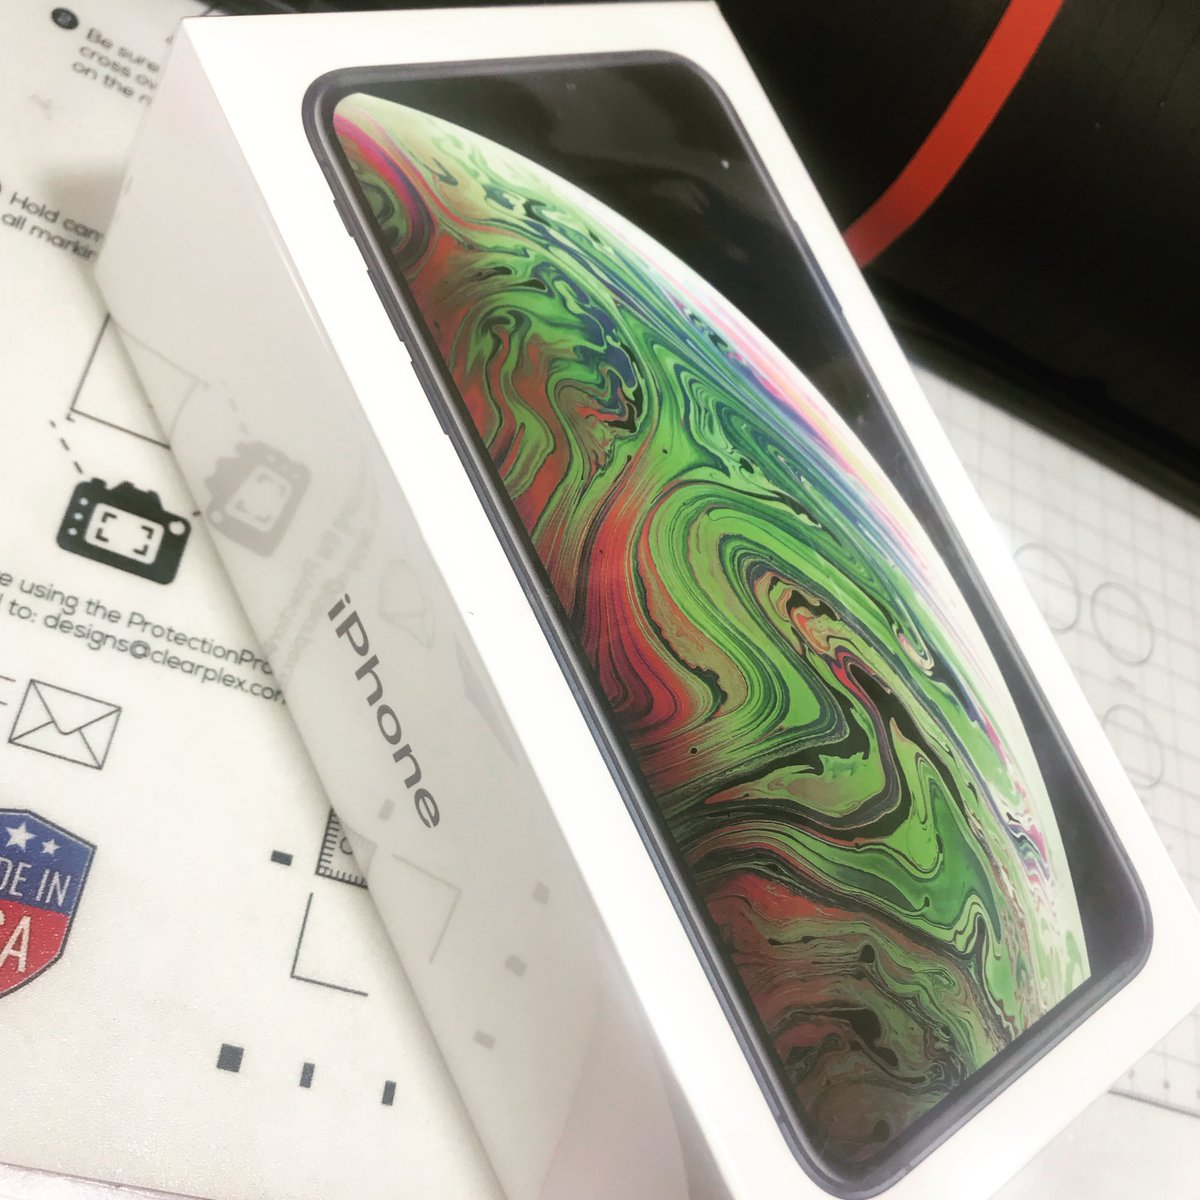 Brand New IPhone XS 64gb WhatsApp For Price  08028818673  #dallas #dallasonline #dallasstore #phones #ikeja #computervillage #iphone11 #tech #applestore #iphone #iphonex #apple #gadgets #samsung #note10plus #notes10 #smartphones #ios  #technology  #mobiles #unboxing #instagoodpic.twitter.com/nDDCRfG89n